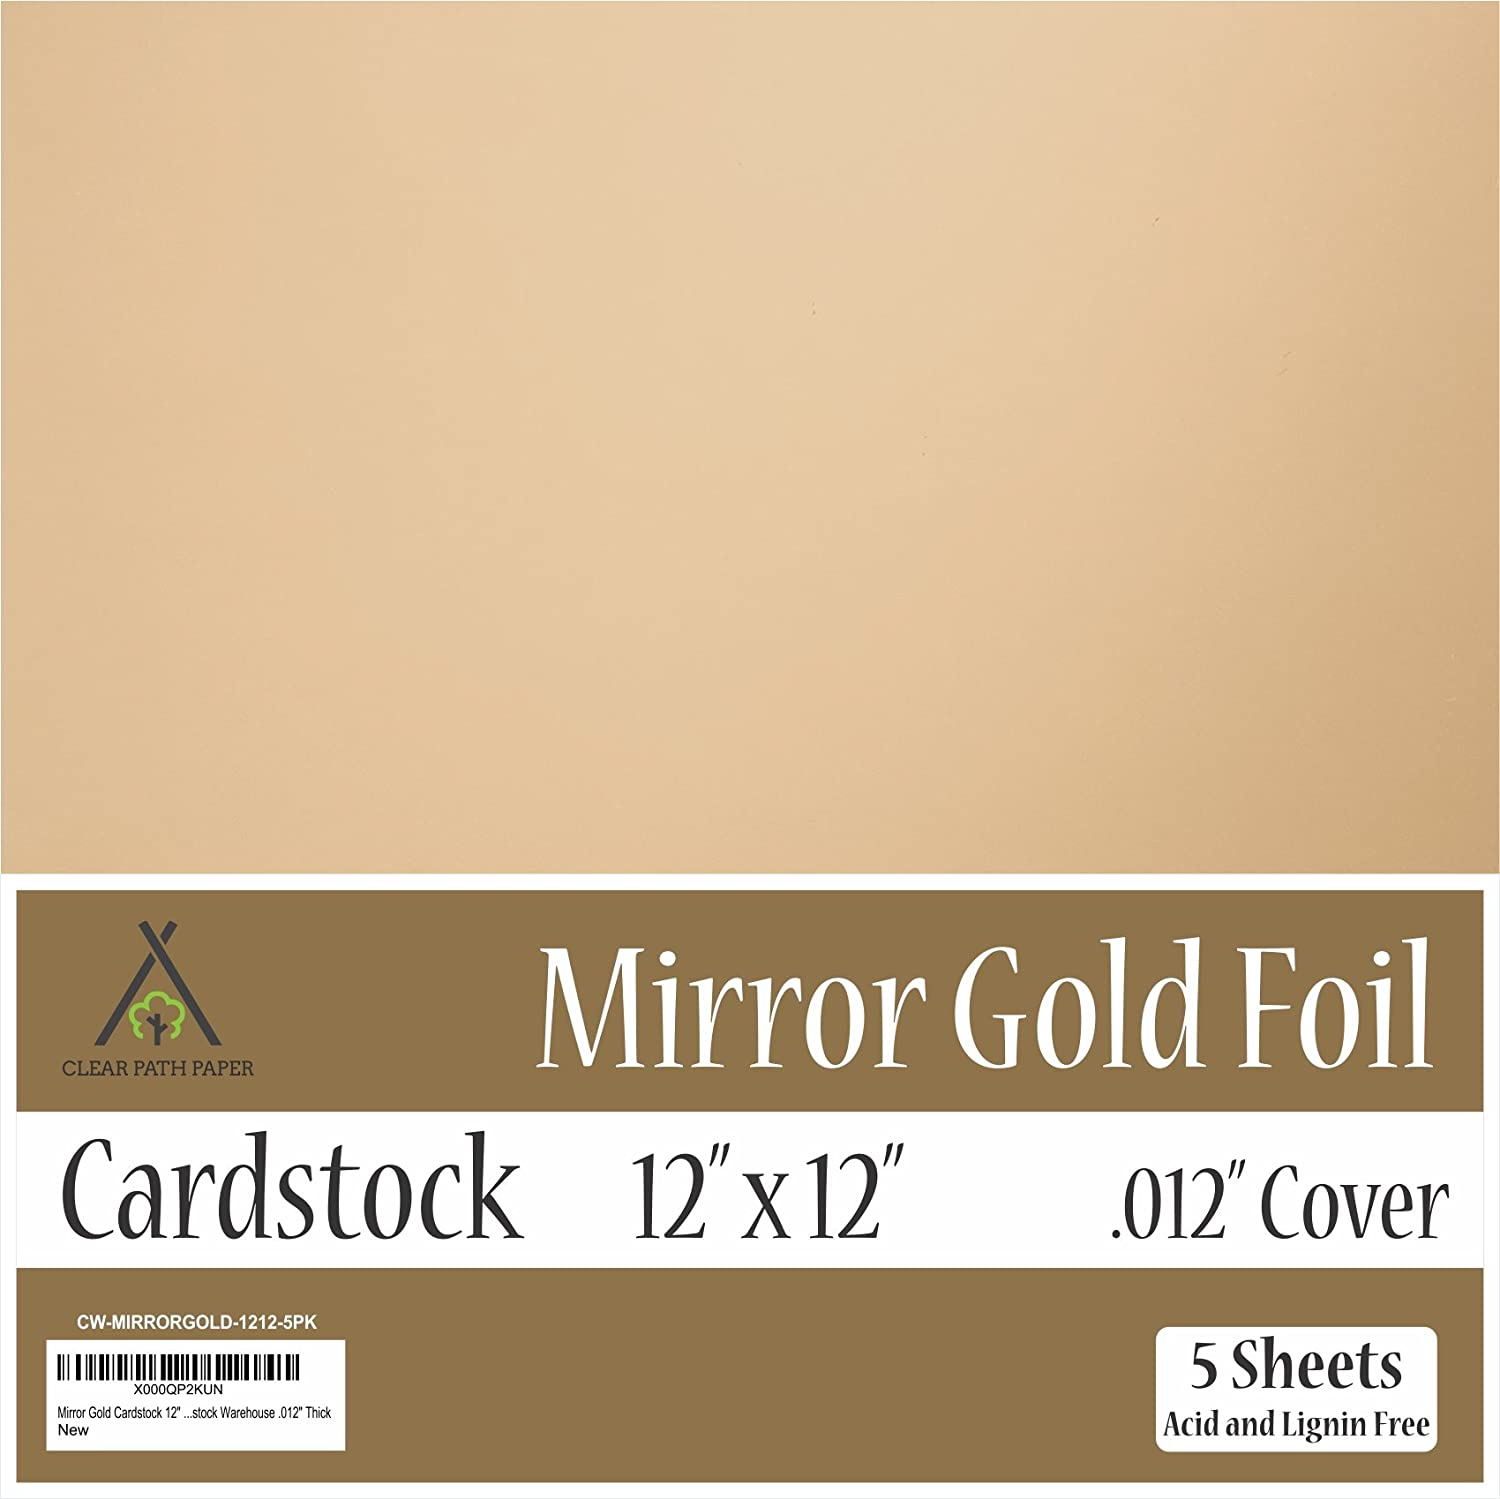 Gold color cardstock paper 5x7 - Amazon Com Mirror Metallic Gold Cardstock 12 X 12 Inch 012 Thick 5 Sheets